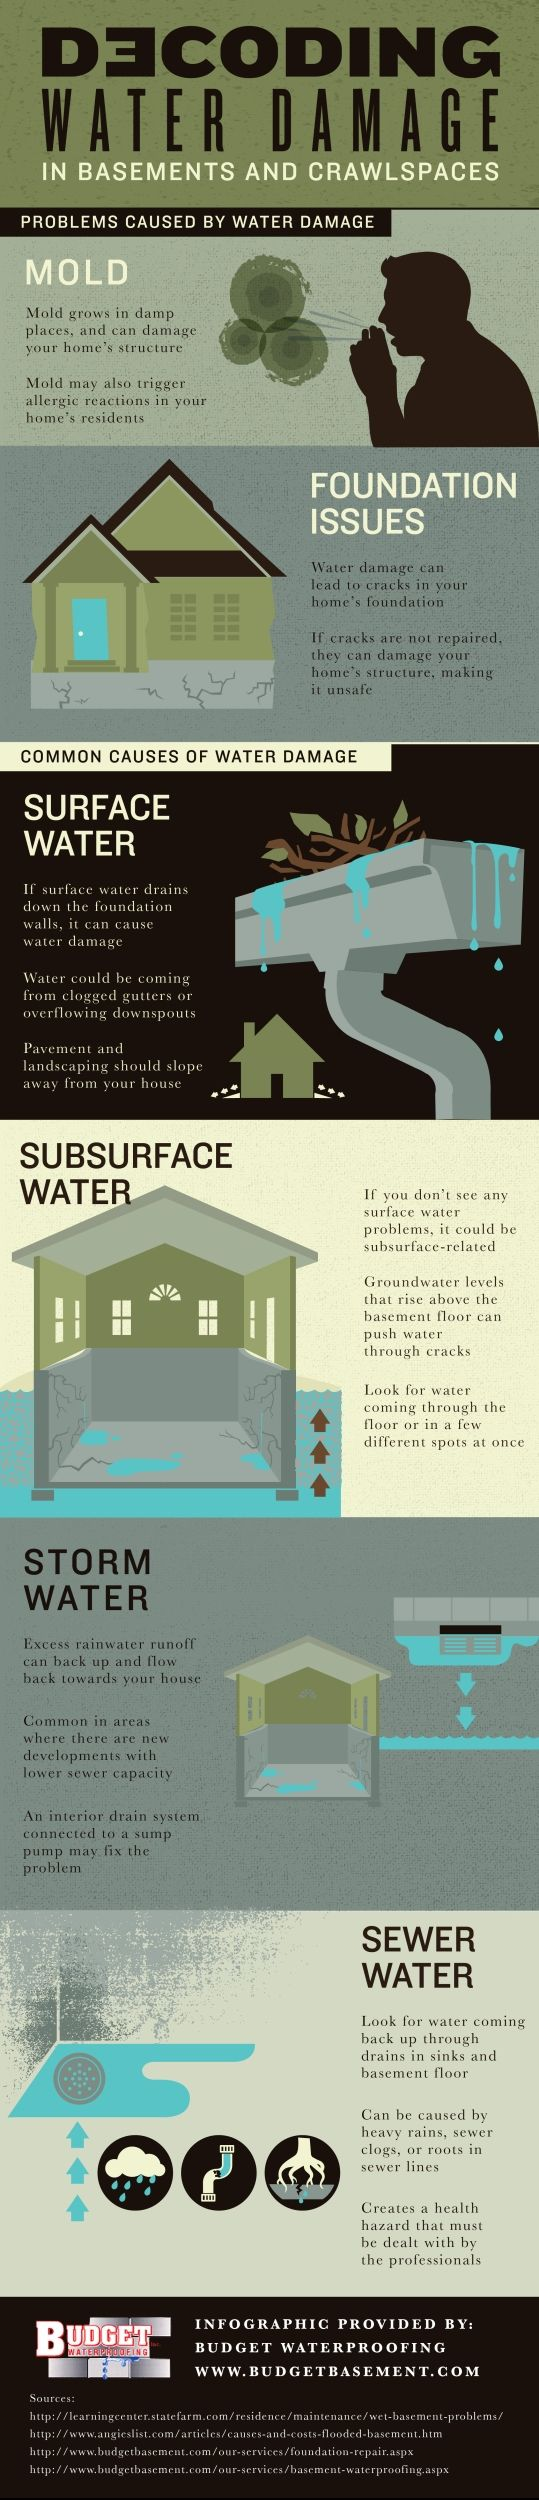 Whatu0027s Causing Water Damage In Your Home? Common Causes Include Surface  Water, Subsurface Water. Basement ...